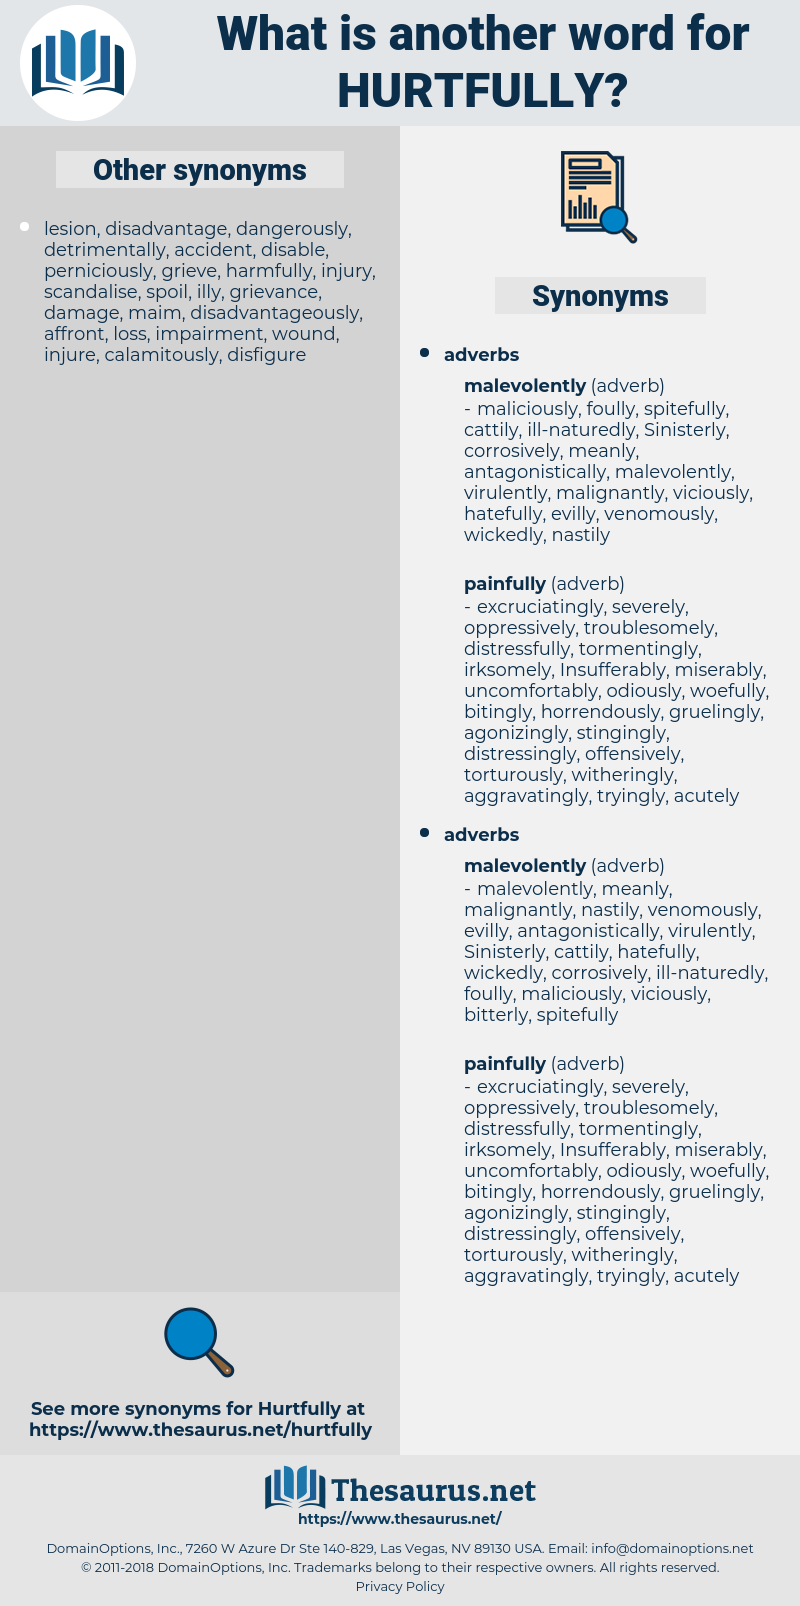 hurtfully, synonym hurtfully, another word for hurtfully, words like hurtfully, thesaurus hurtfully